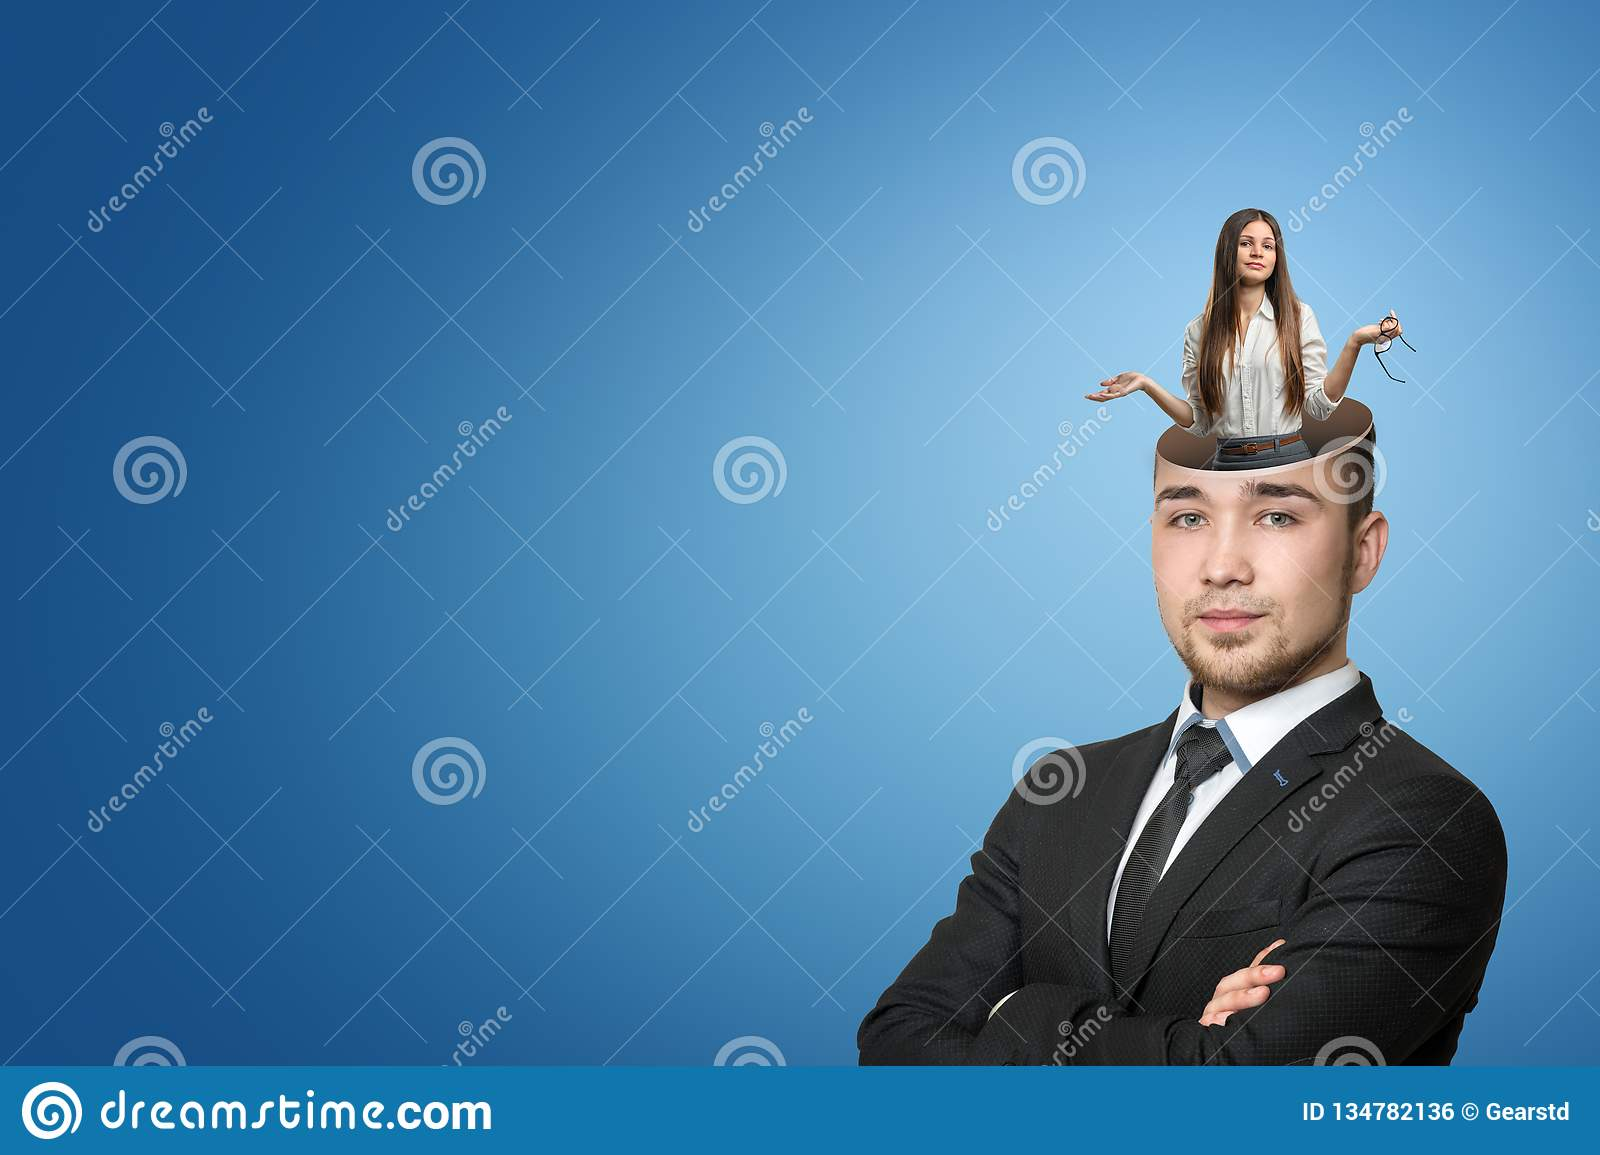 Businessman, arms folded, with upper part of head missing as if it had been cut away, with a businesswoman emerging out